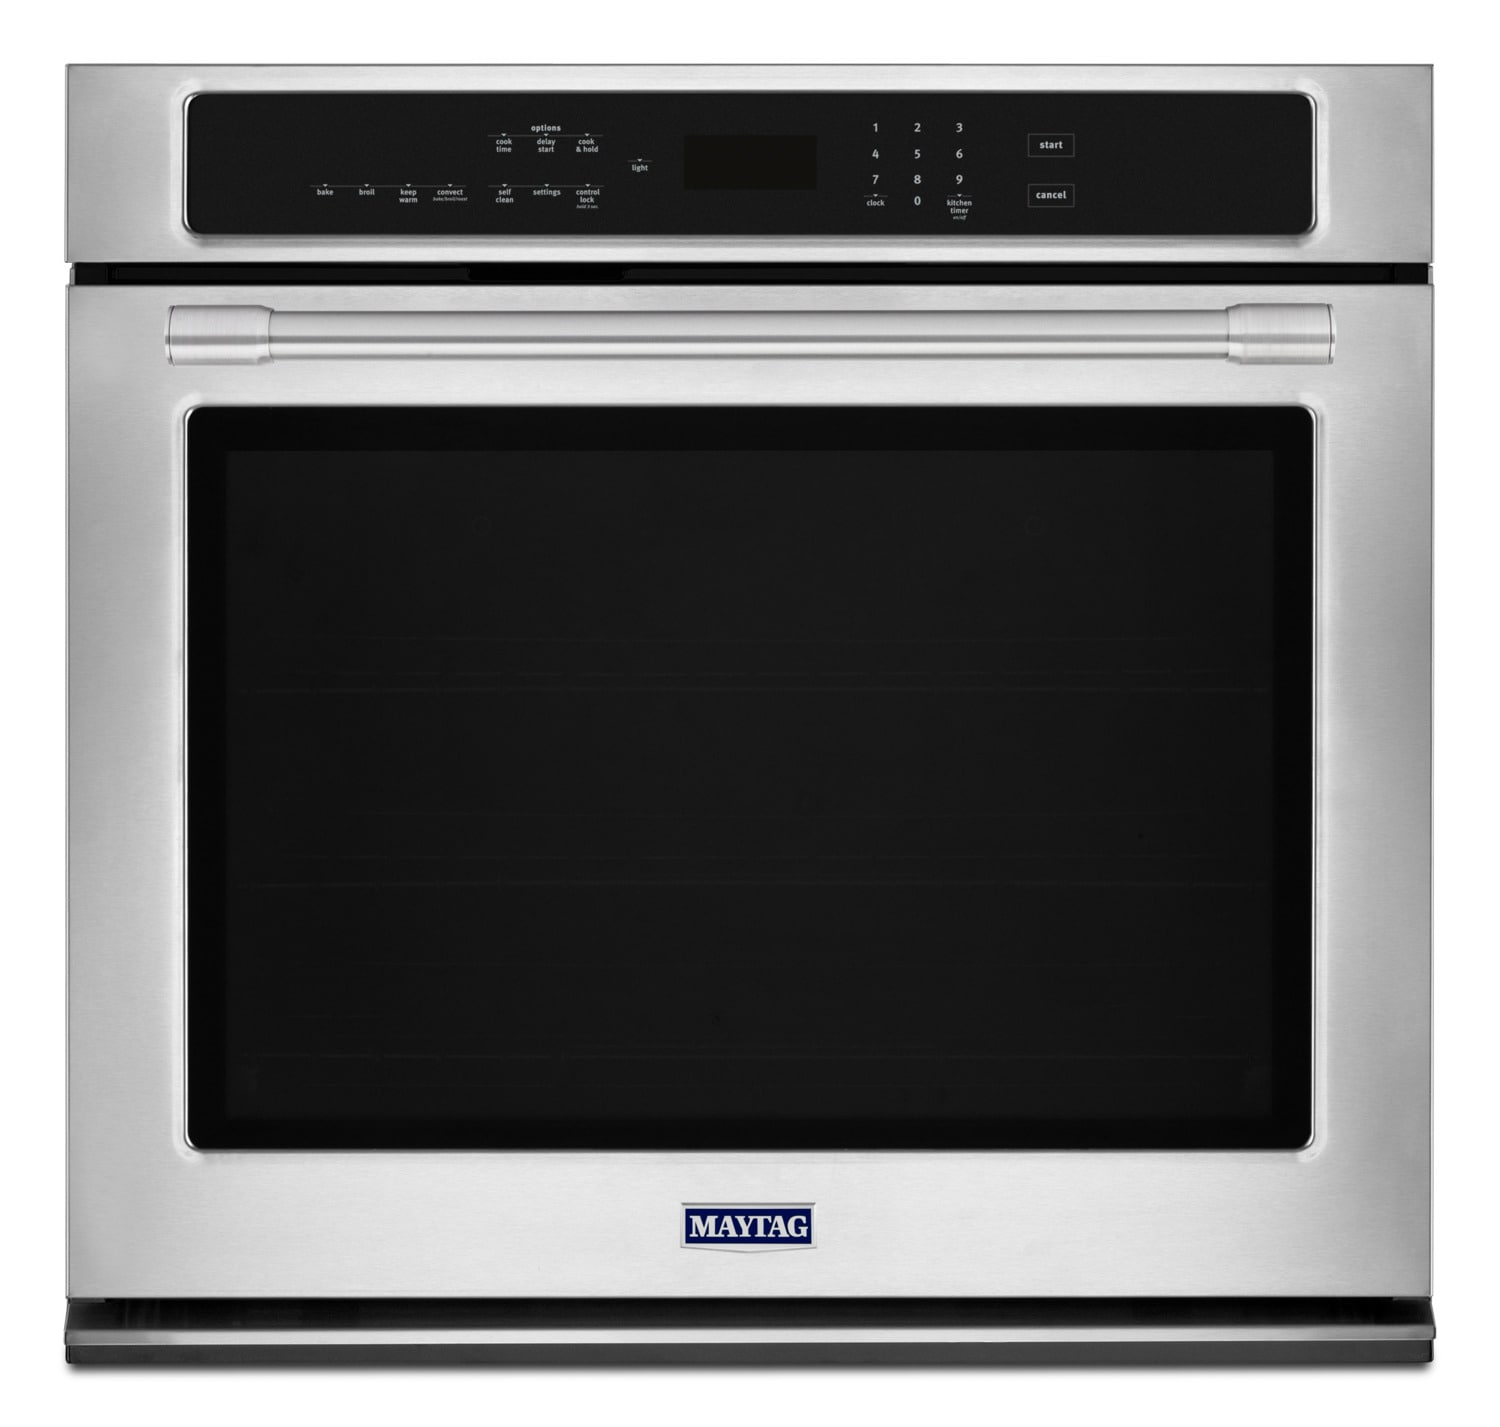 Maytag 4.3 Cu. Ft. Built-In Wall Oven – MEW9527FZ